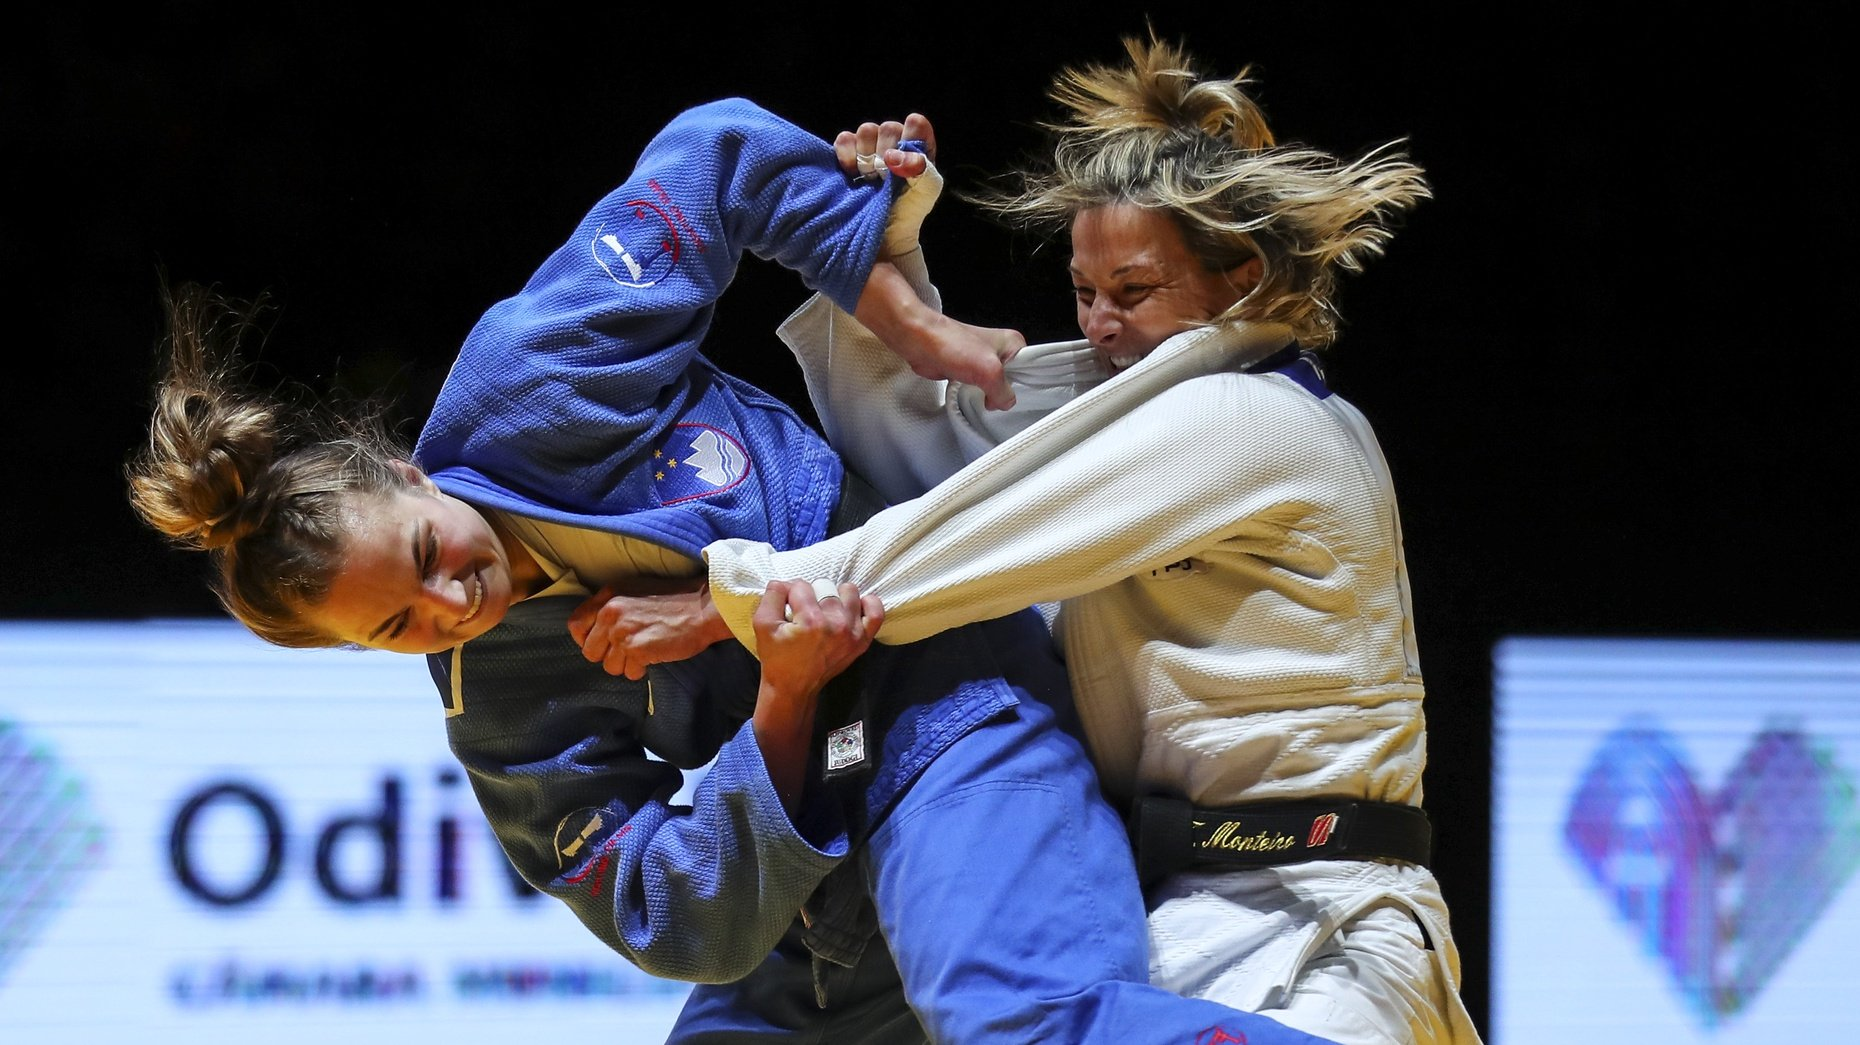 Telma Monteiro of Portugal (white) and Kaja Kajzer of Slovenia (blue) in action during the gold medal match in the woman's -57kg category at the European Judo Championships in Lisbon, Portugal, 16 April 2021. NUNO VEIGA/LUSA